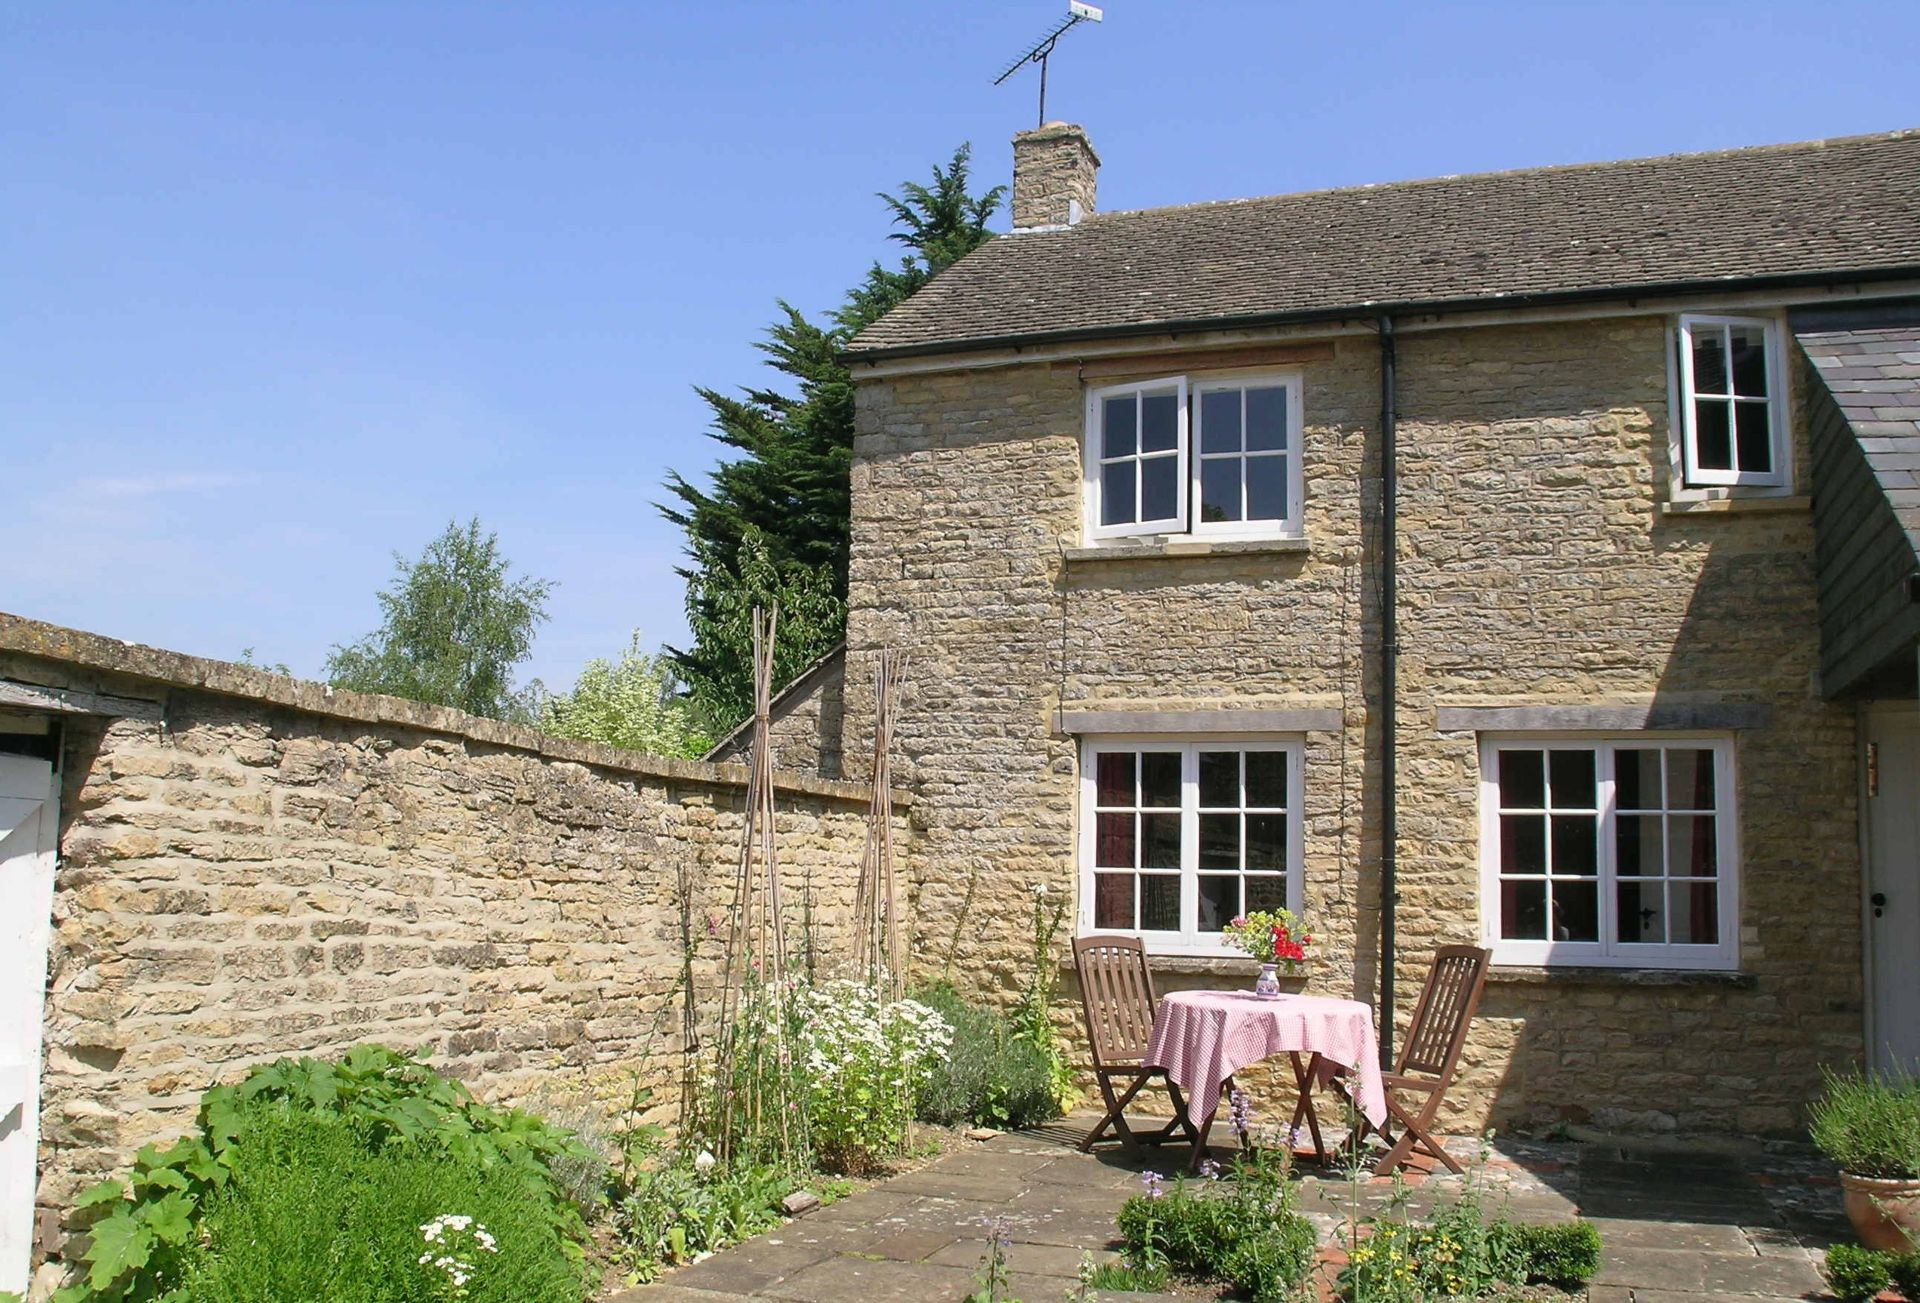 Dairy Cottage looks out onto a walled garden, where an array of herbs can be found and used in your cooking